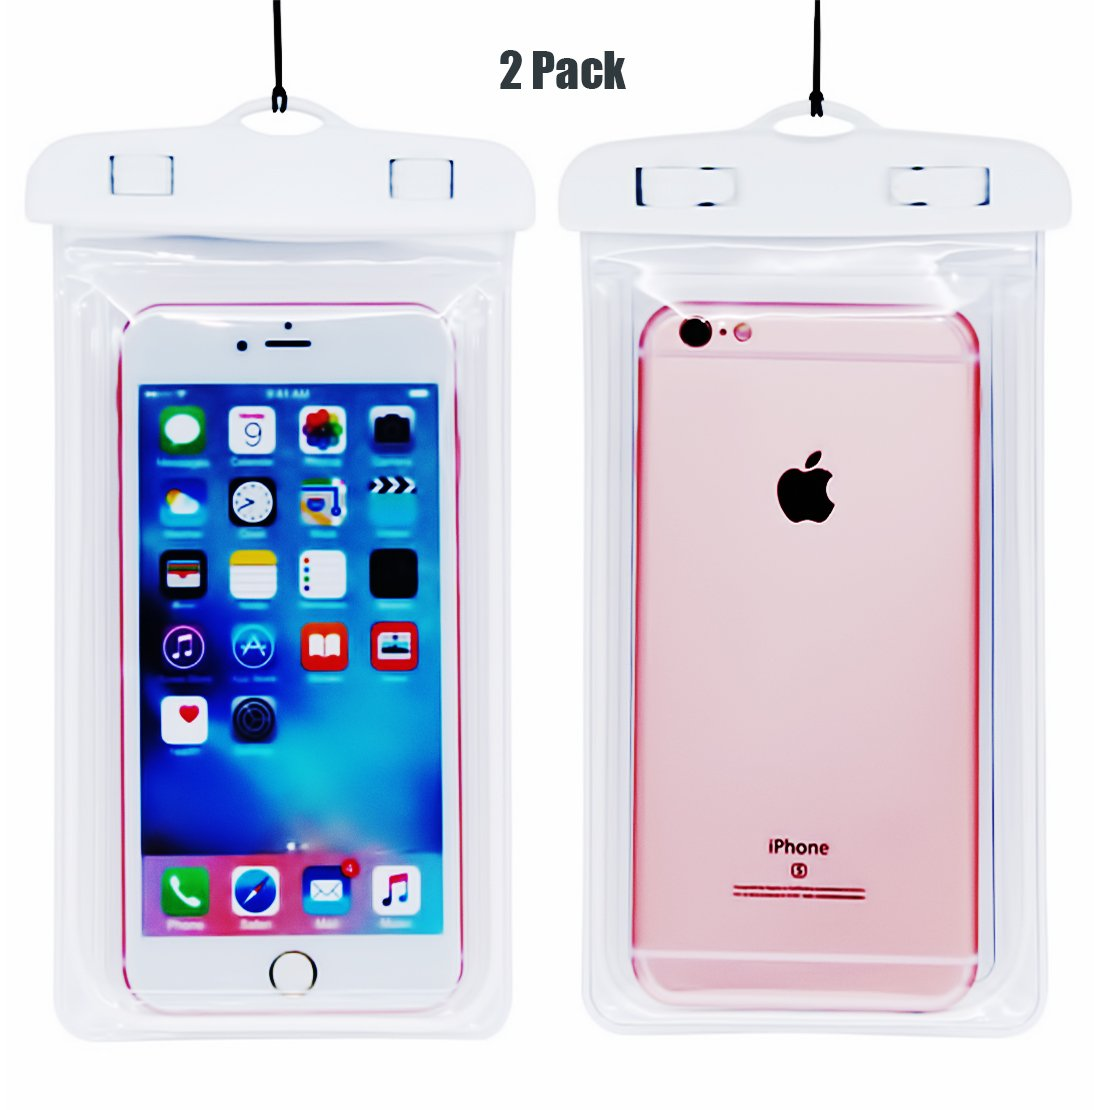 """(2Pack) Universal Waterproof Case, CaseHQ IPX8 Waterproof Phone Pouch Dry Bag for iPhone X/8/8plus/7/7plus/6s/6/6s plus Samsung galaxy s8/s7 Google Pixel HTC10 up to 6.0"""" diagonal (Black) 4336664583"""